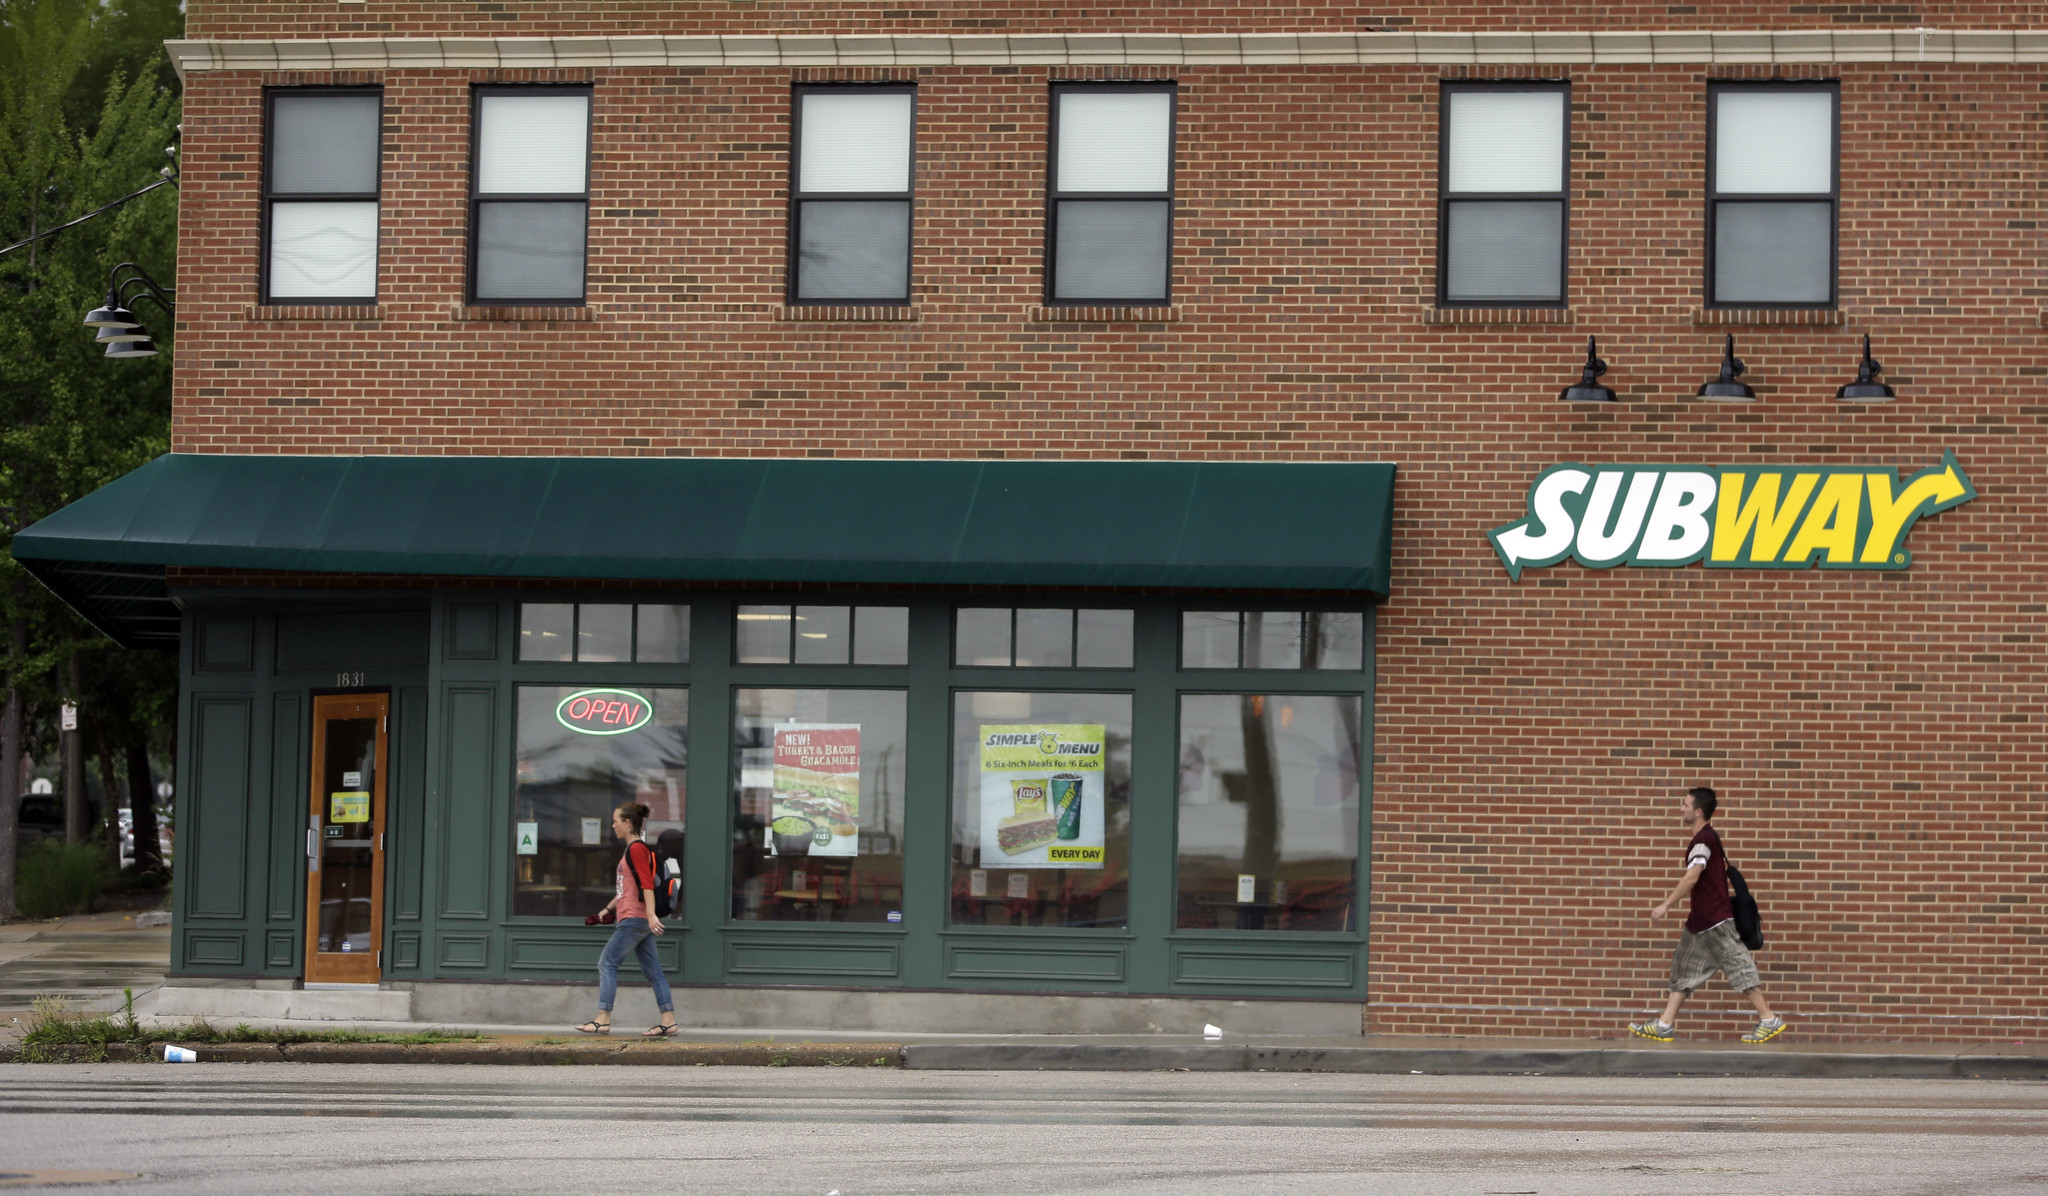 Jared raid is only Subway's latest problem